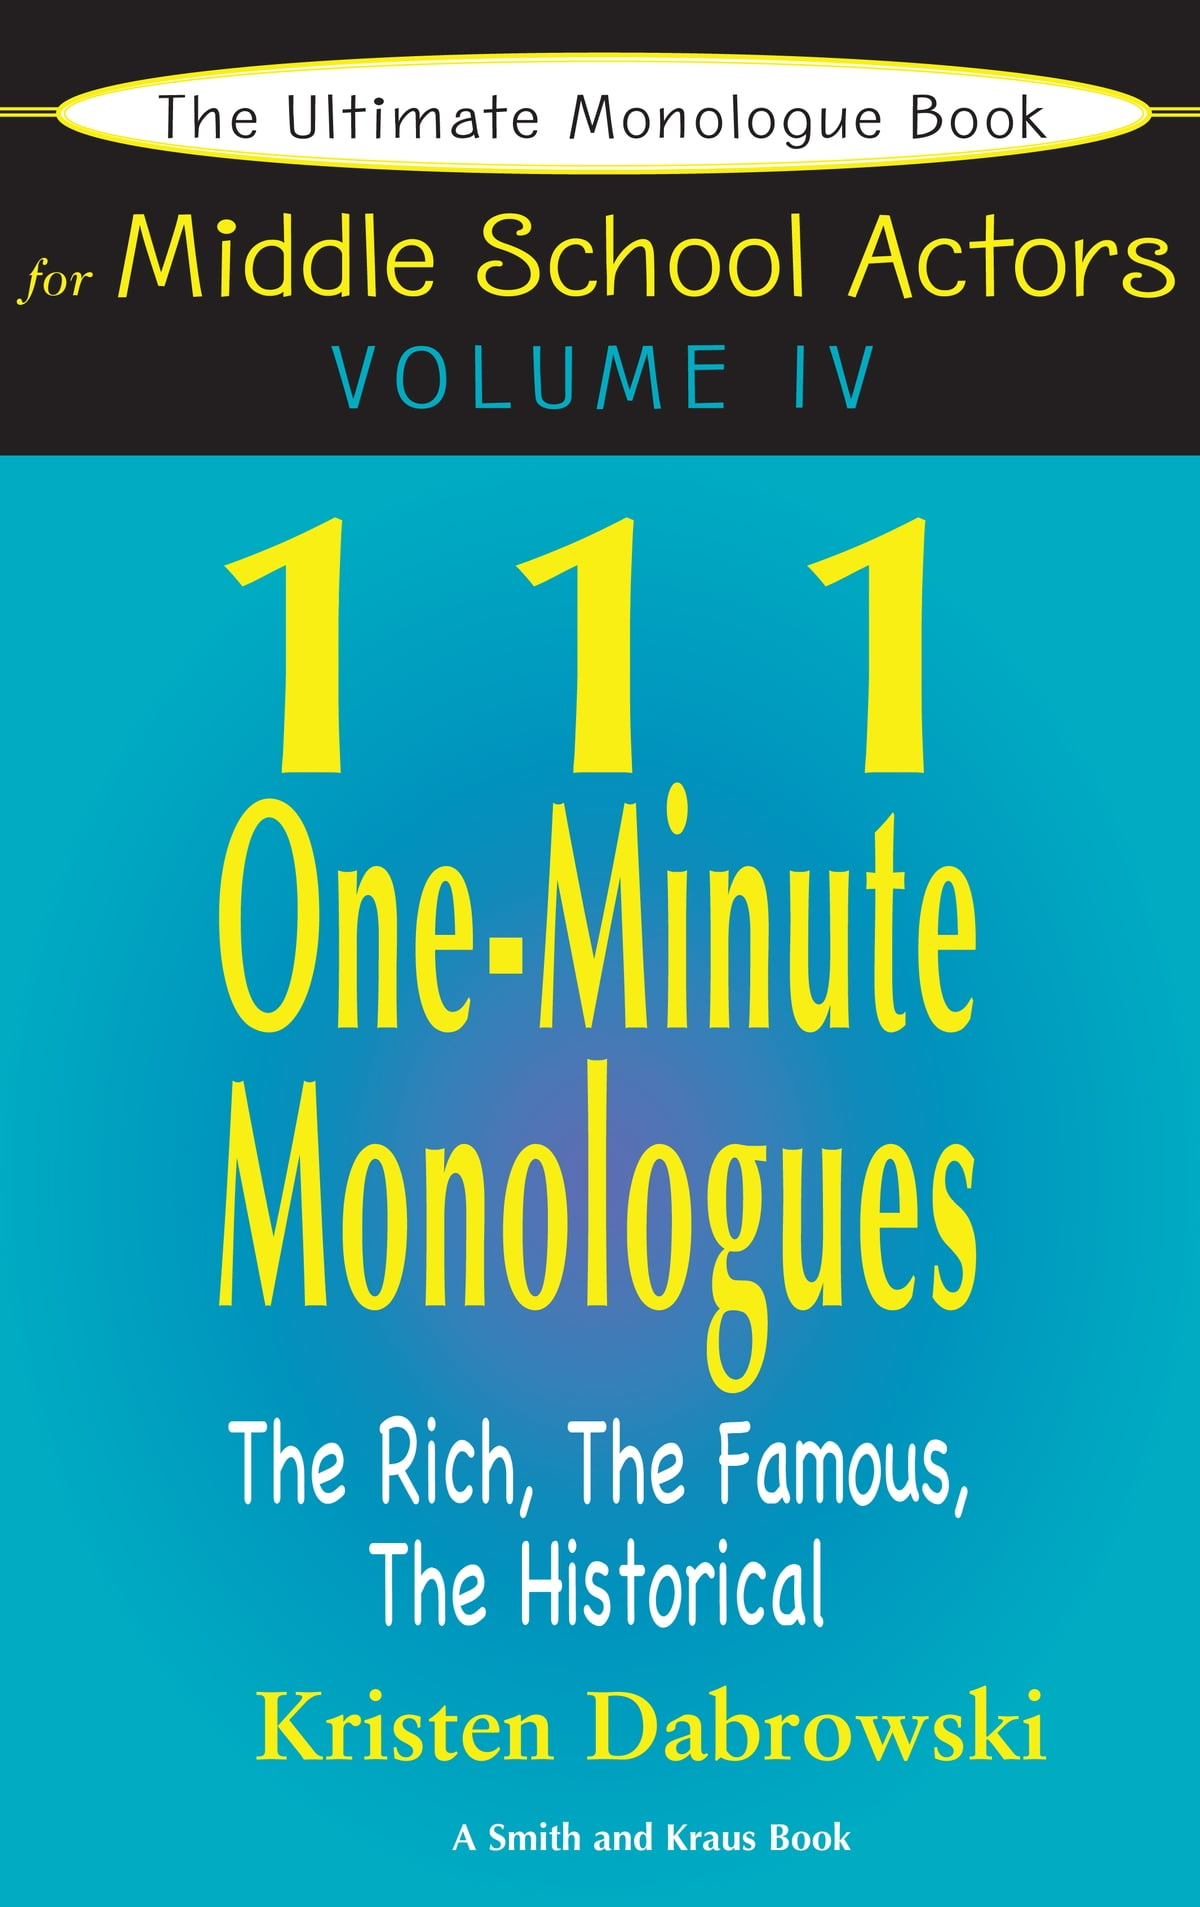 The Ultimate Monologue Book for Middle School Actors Volume IV ...